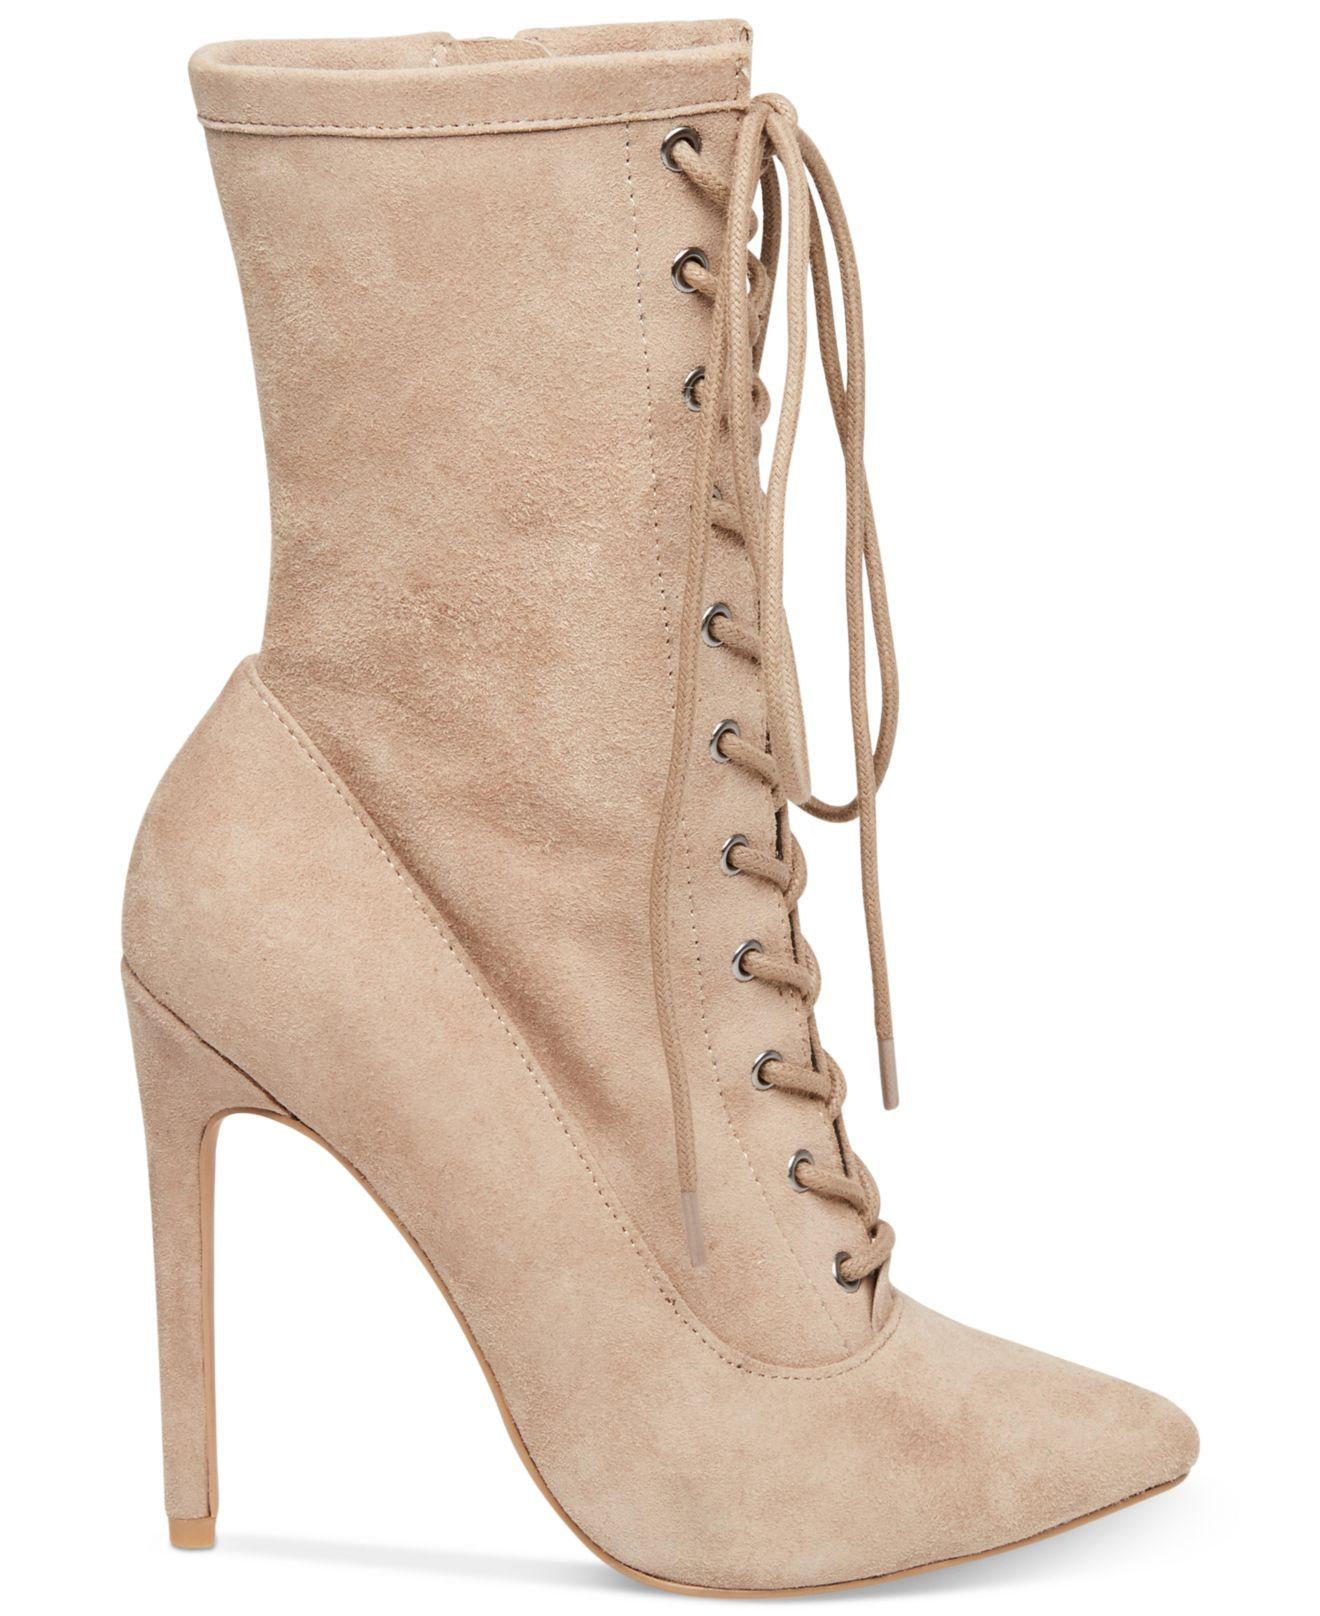 0634207de0f Steve Madden Women s Satisfied Lace-up Stiletto Booties in Natural ...